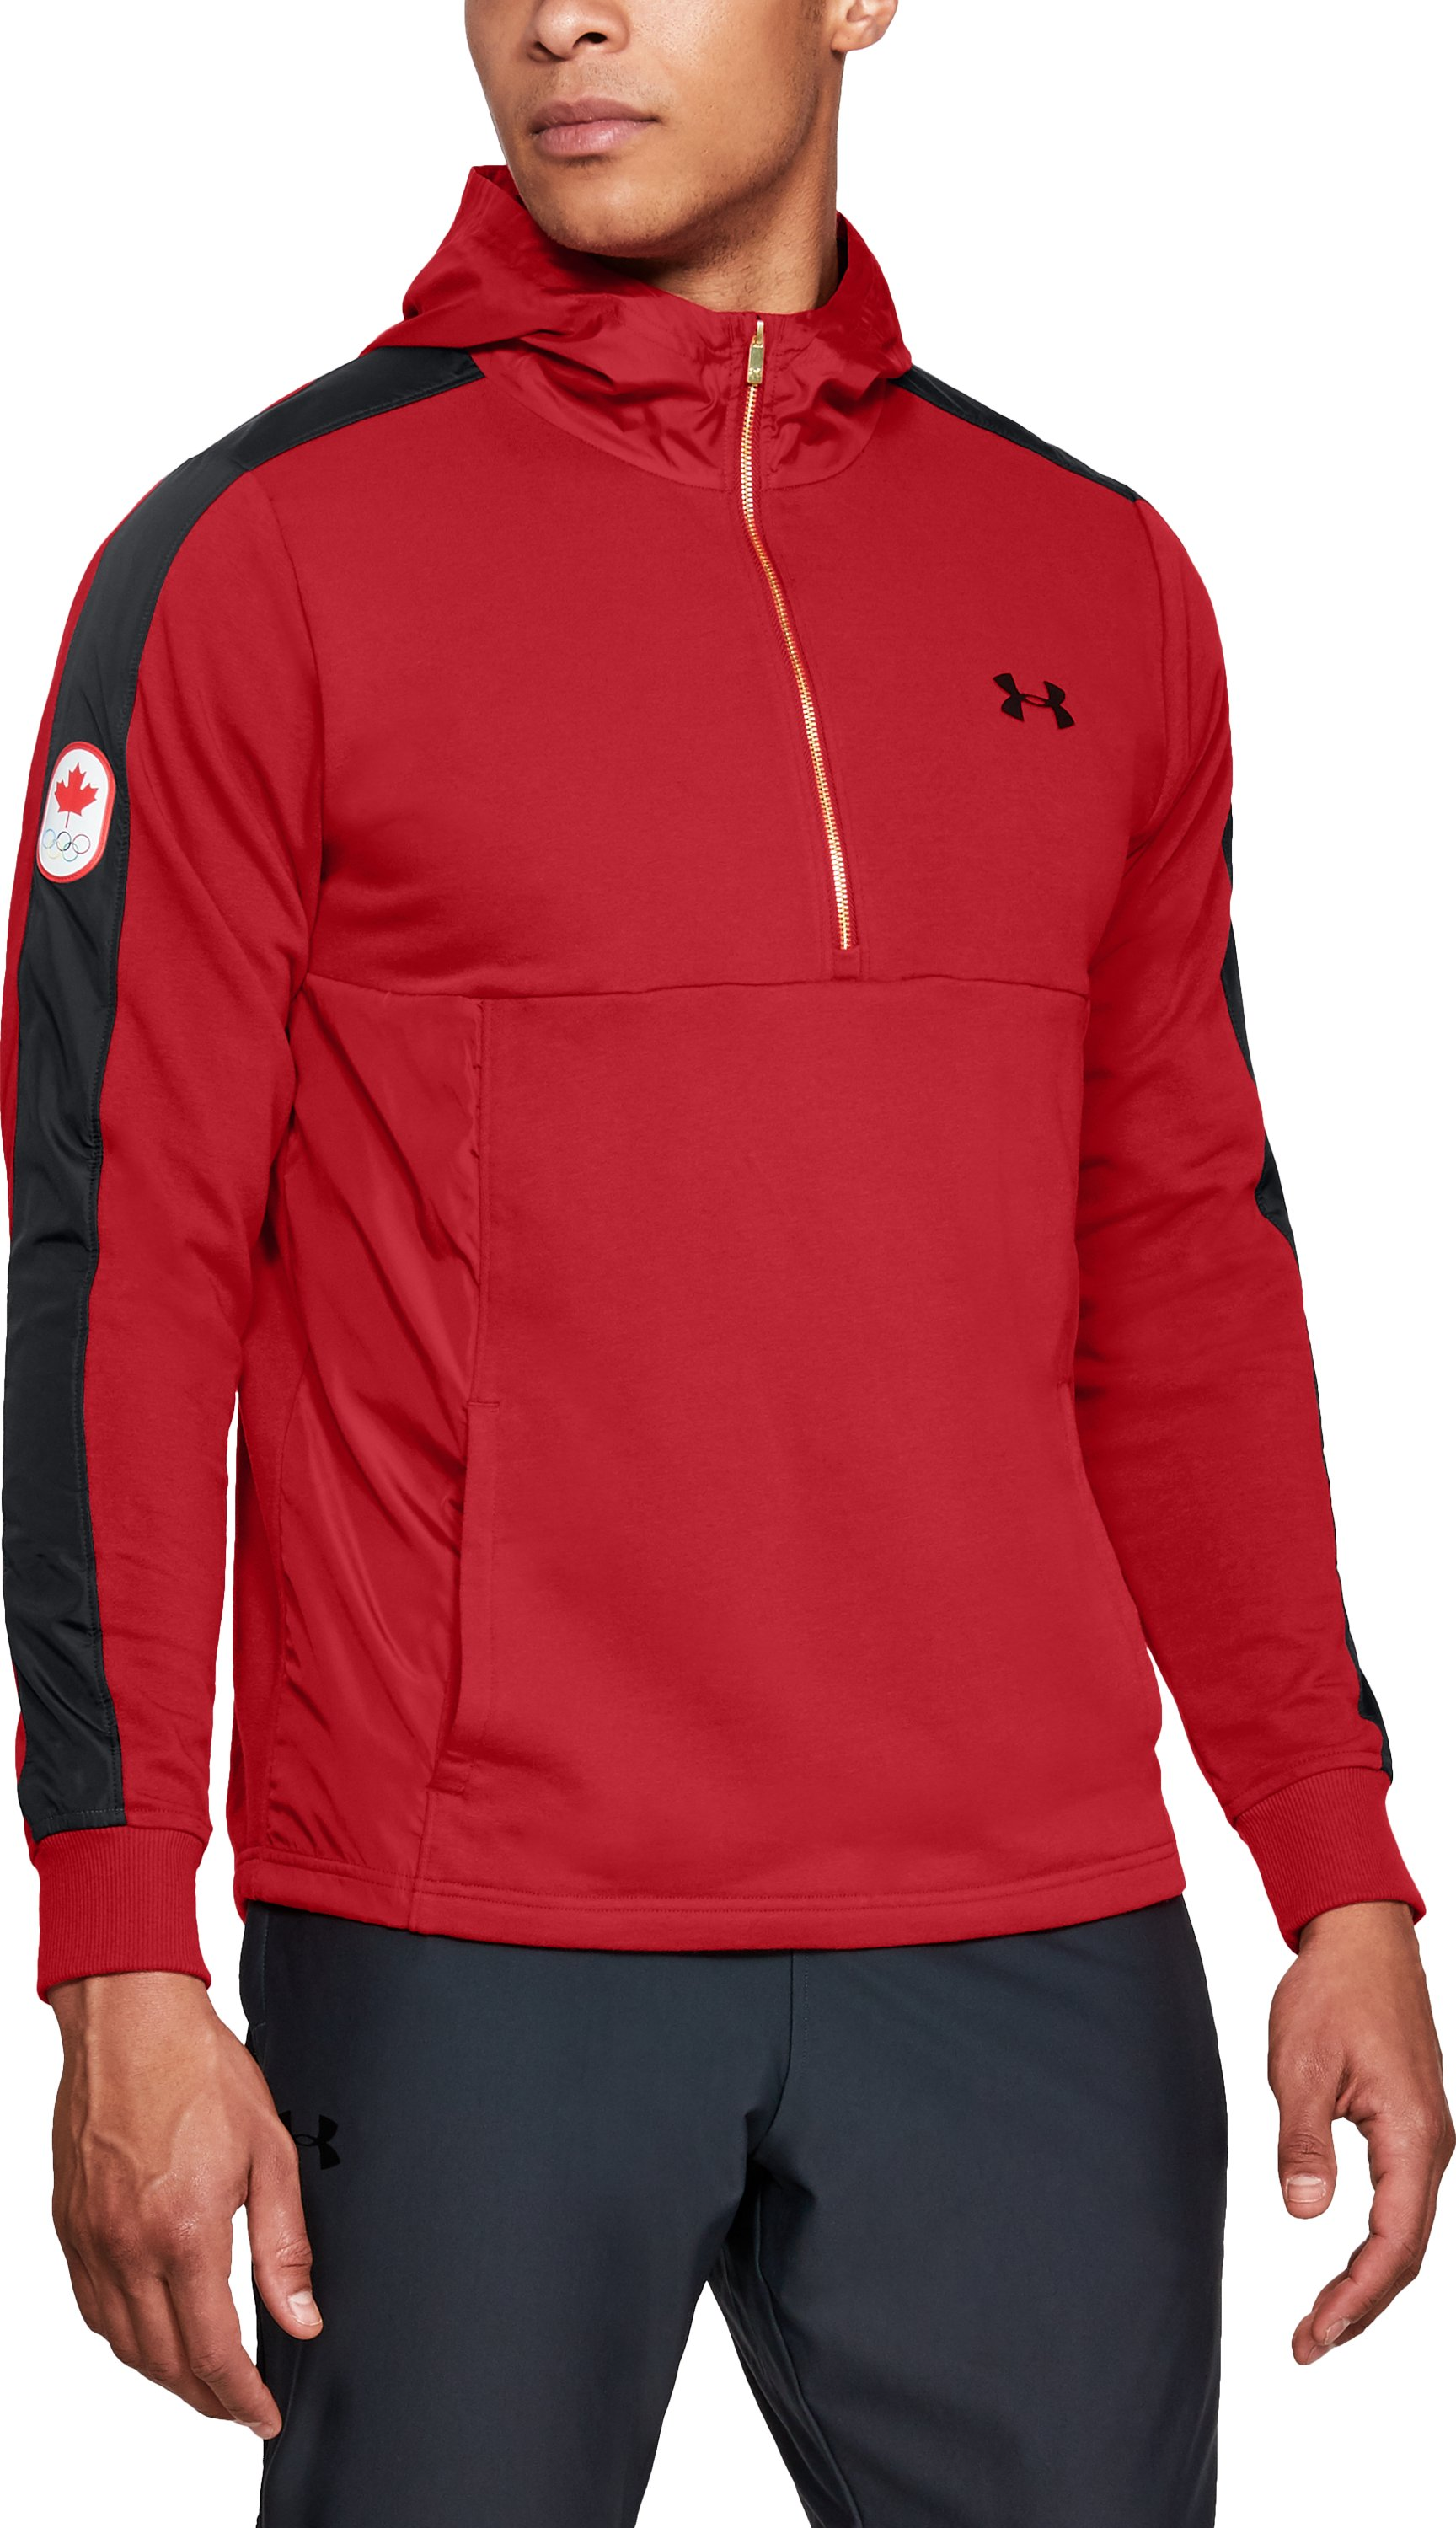 Men's UA Team Canada Performance Threadborne Terry ½ Zip Hoodie, Red, zoomed